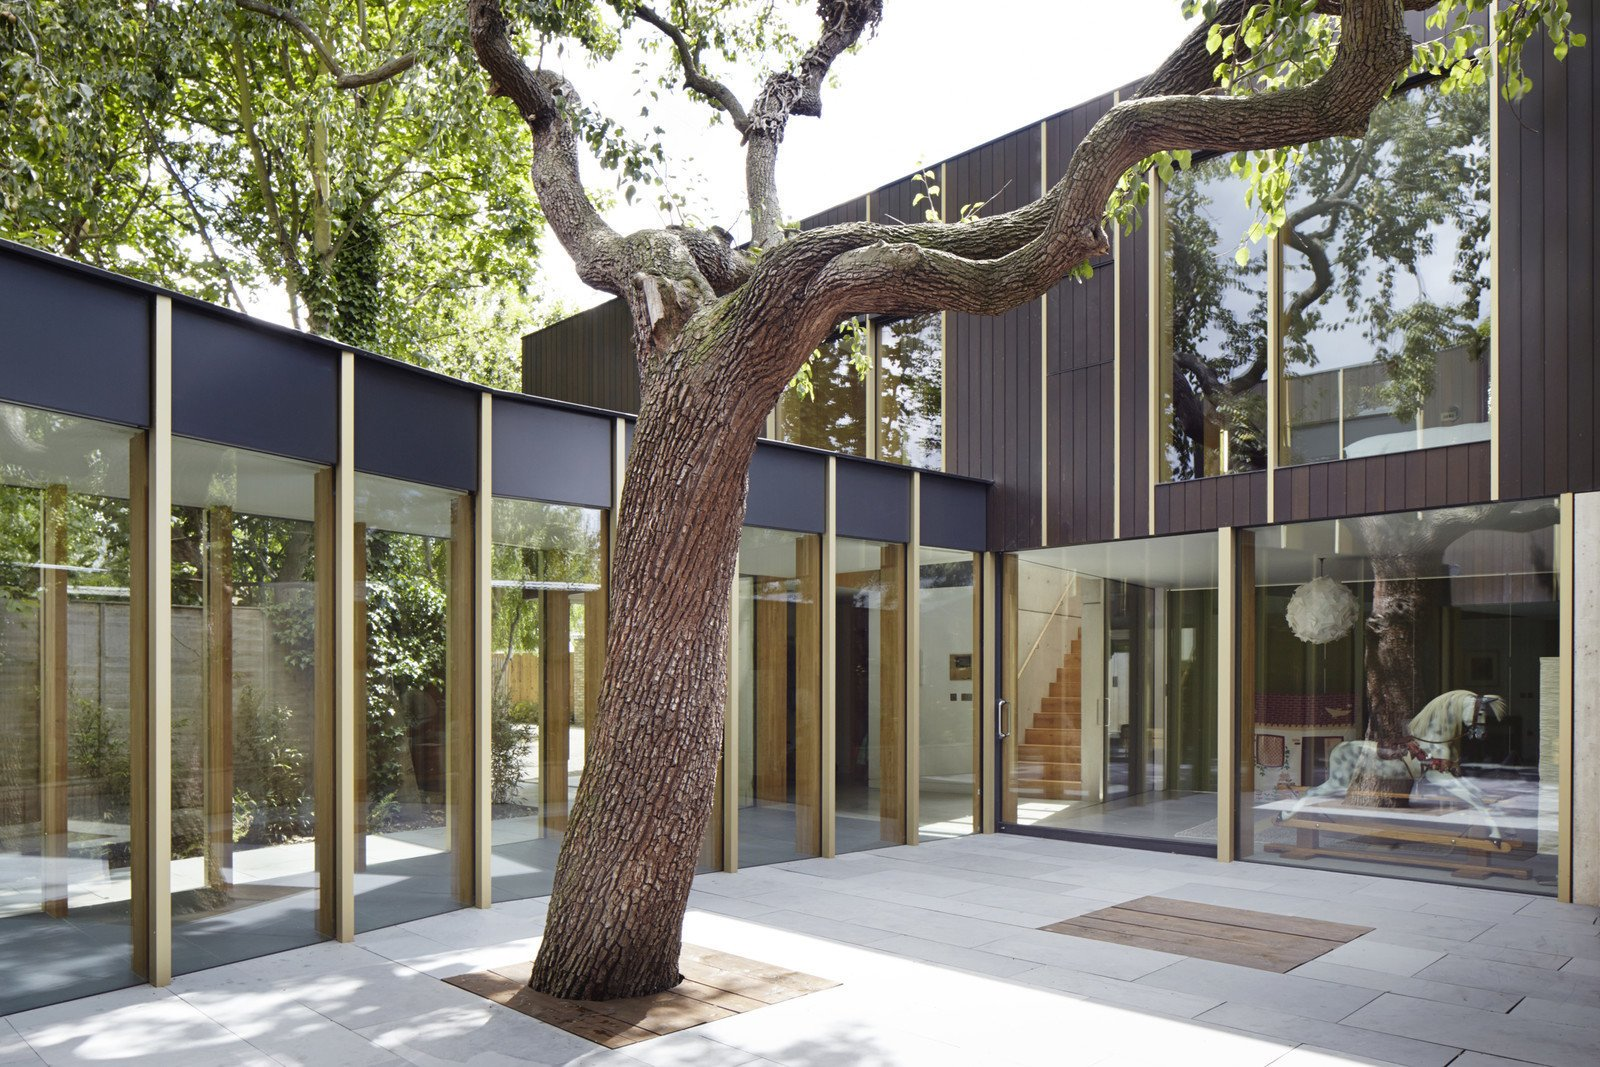 Photo 1 of 10 in 10 Homes With Large, Well-Ventilated Courtyards